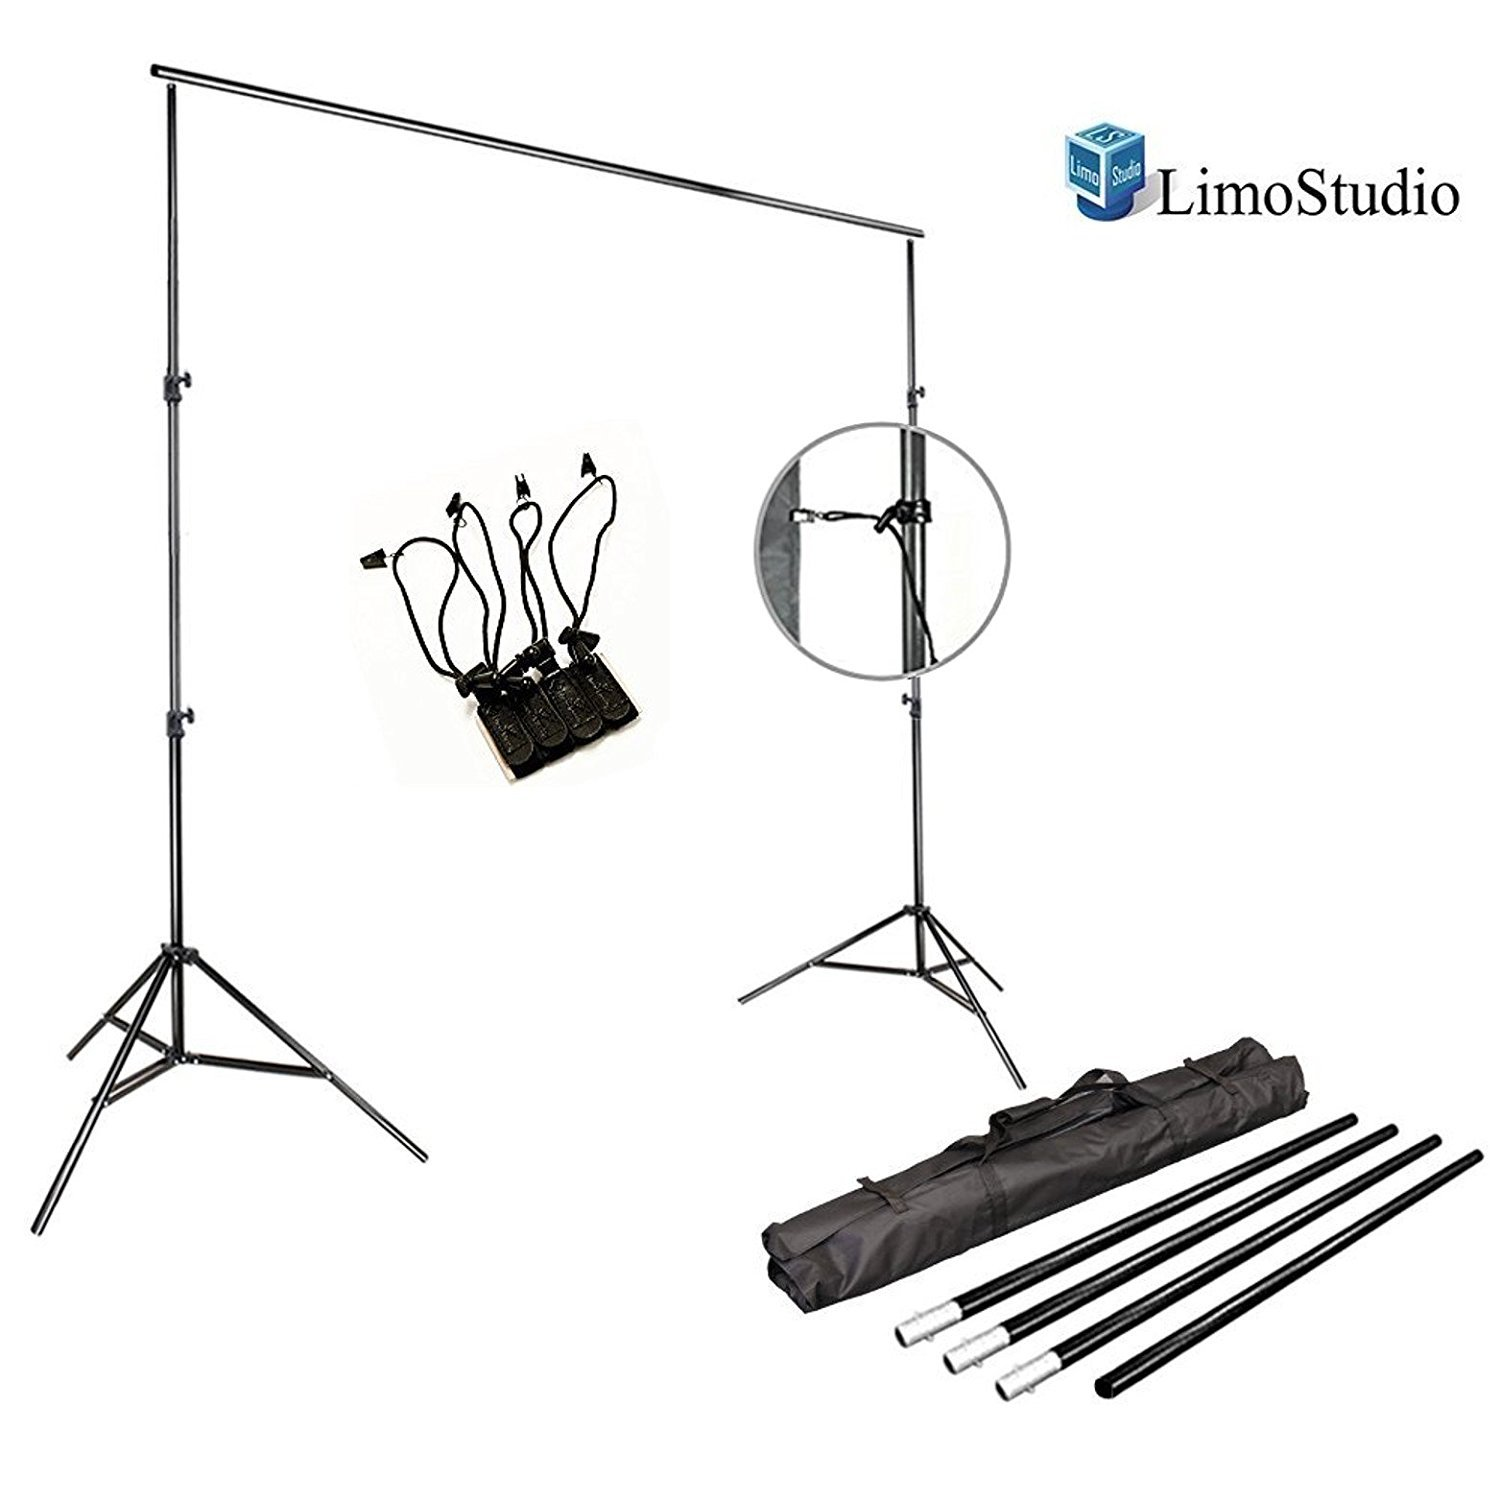 LimoStudio Photo Video Studio 10Ft Adjustable Muslin Background Backdrop Support System Stand with 4 PCS x Backdrop Holders, AGG292 by LimoStudio